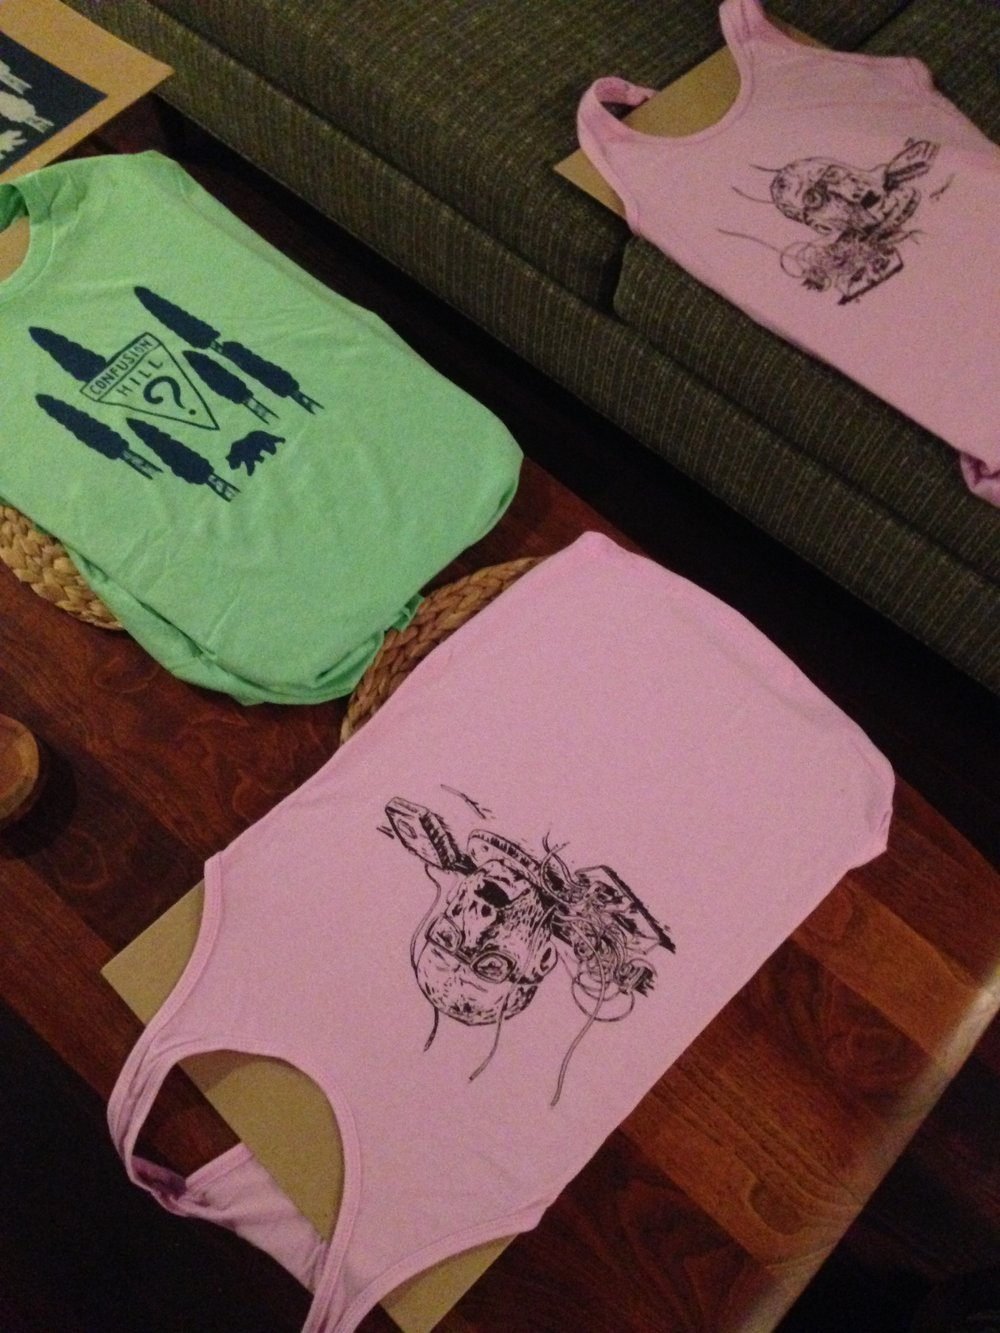 Say hello to Confusion Hill & Android Head - These are the names of our new Z-Grade shirt creations.